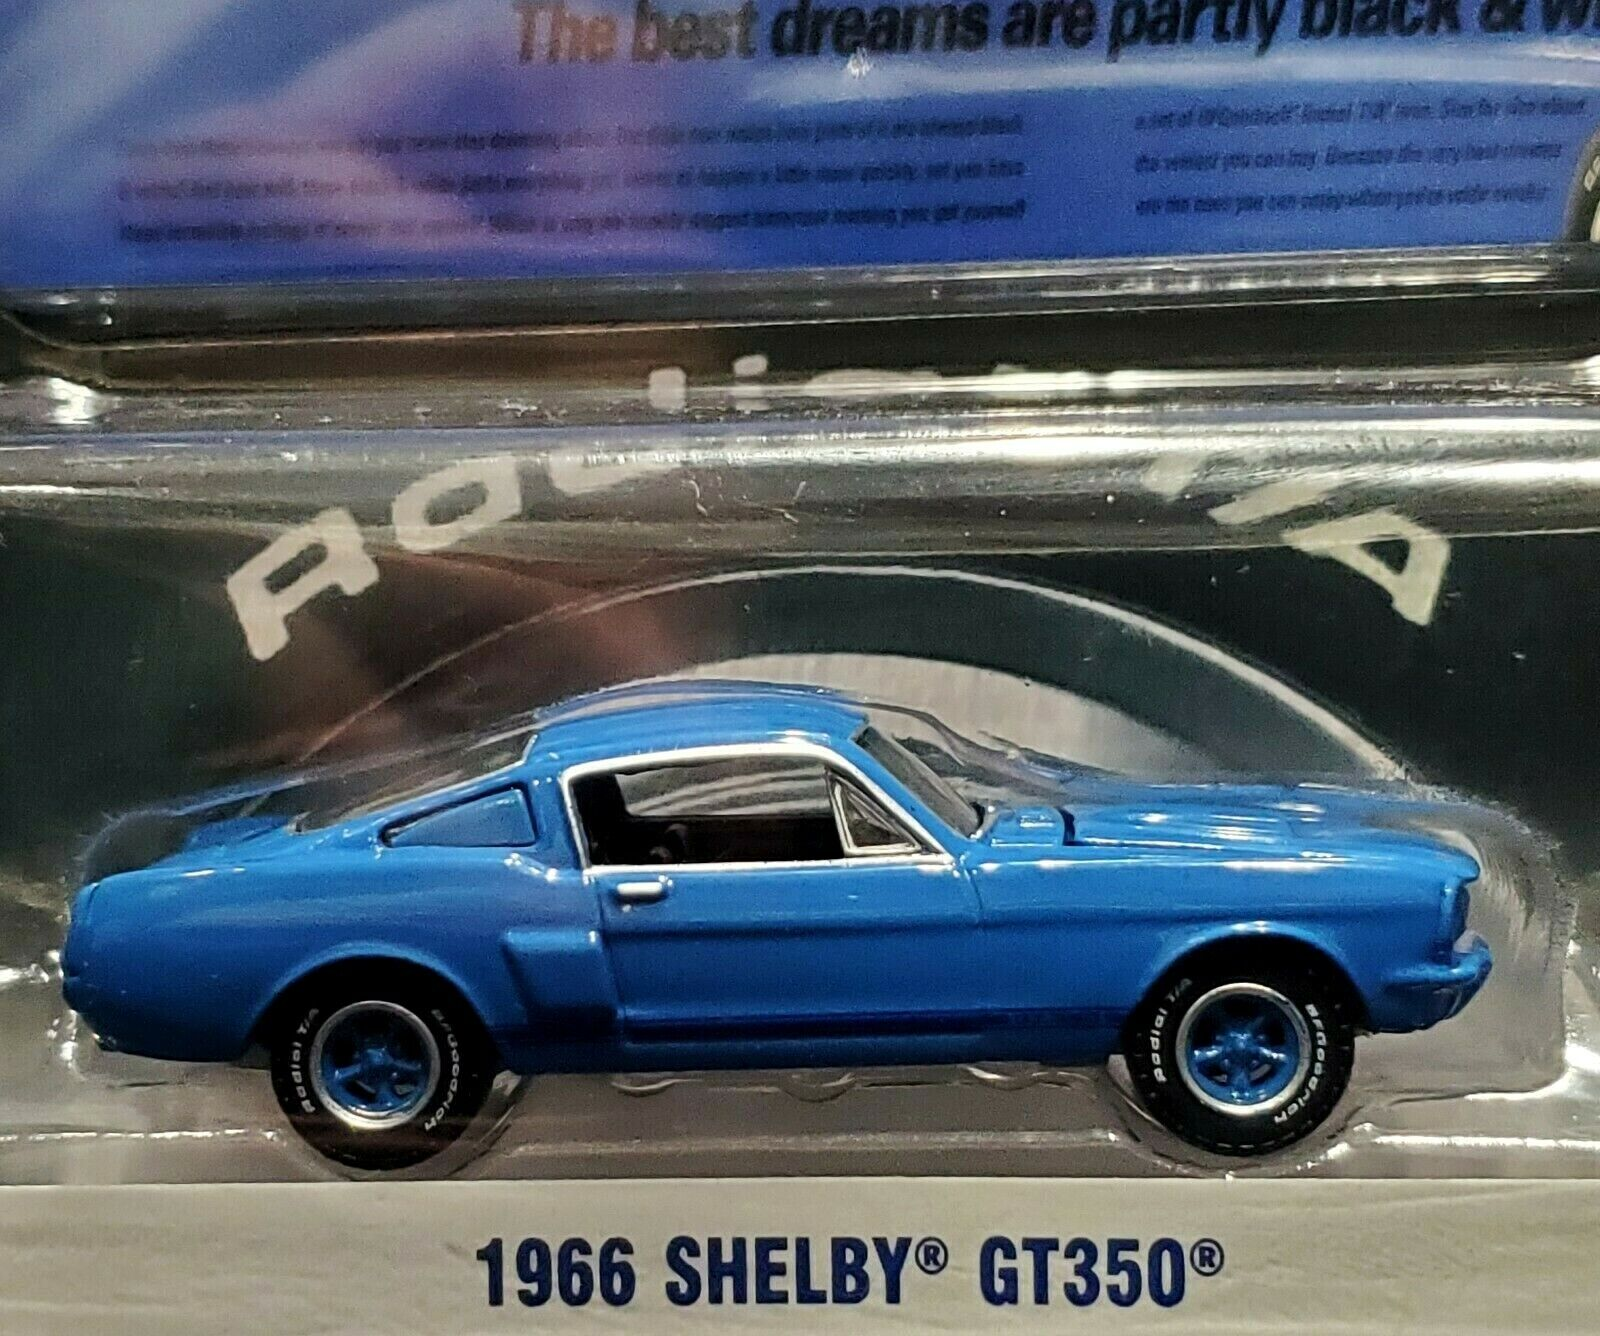 Greenlight 66 1966 Shelby GT350 BF Goodrich Hobby Exclusive